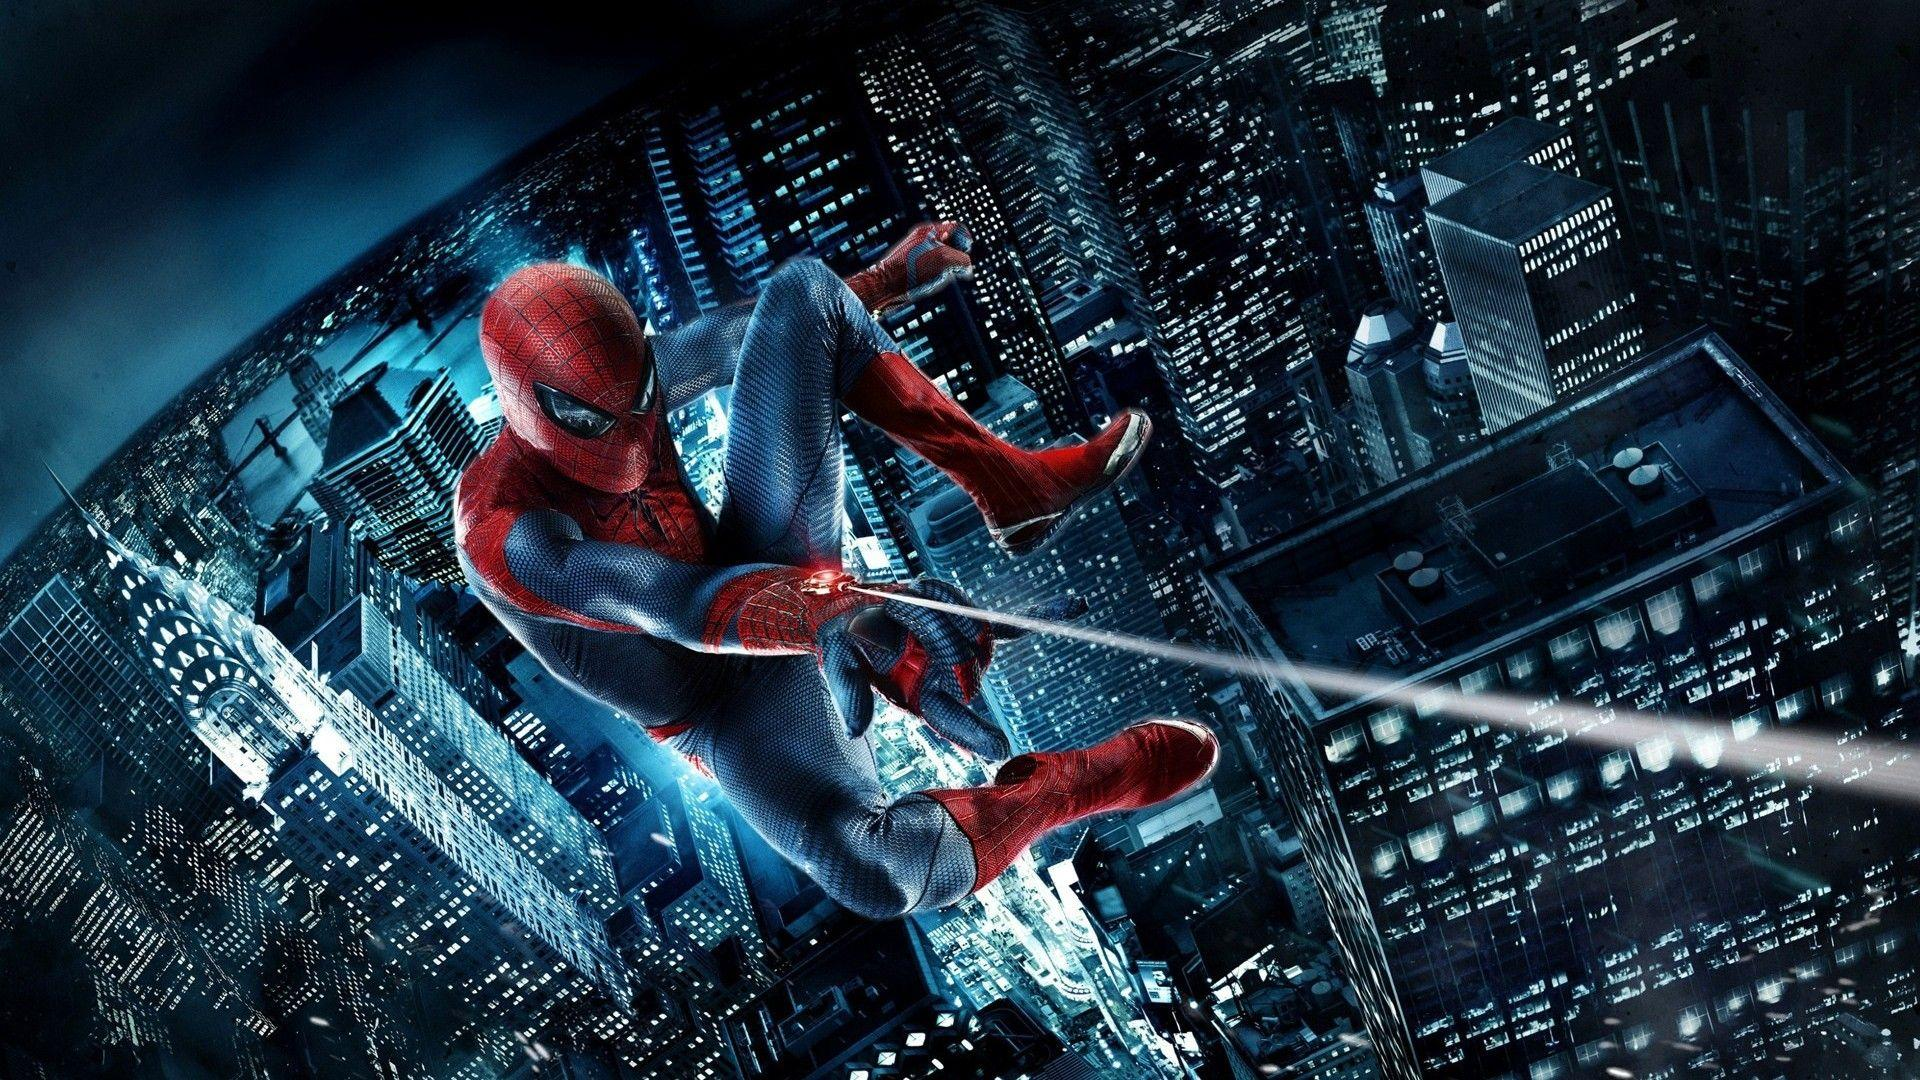 Spiderman Backgrounds Pictures Group